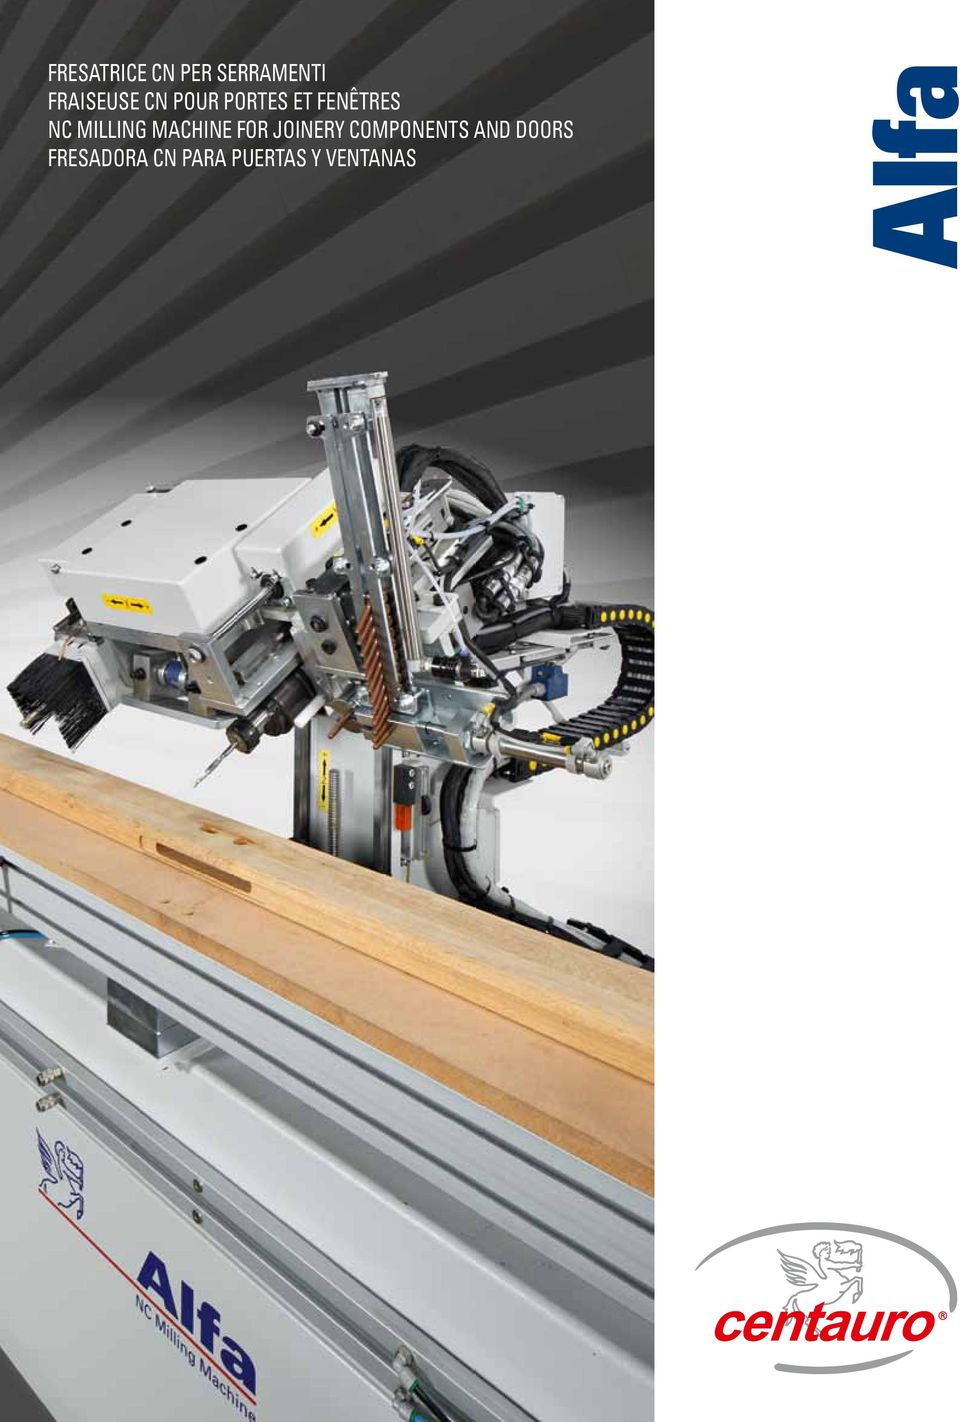 MACHINE FOR joinery COMPONENTS AND